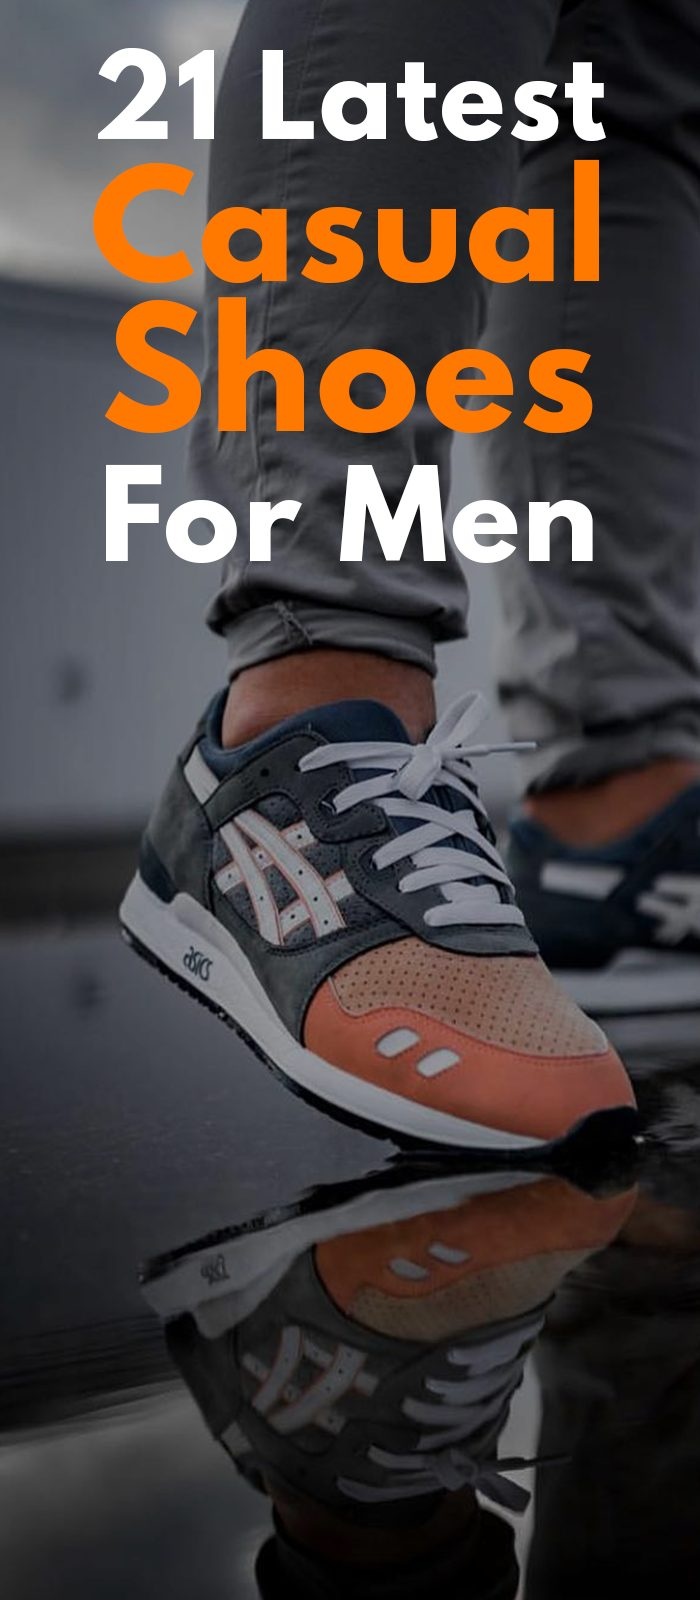 21 Latest Casual Shoes For Men